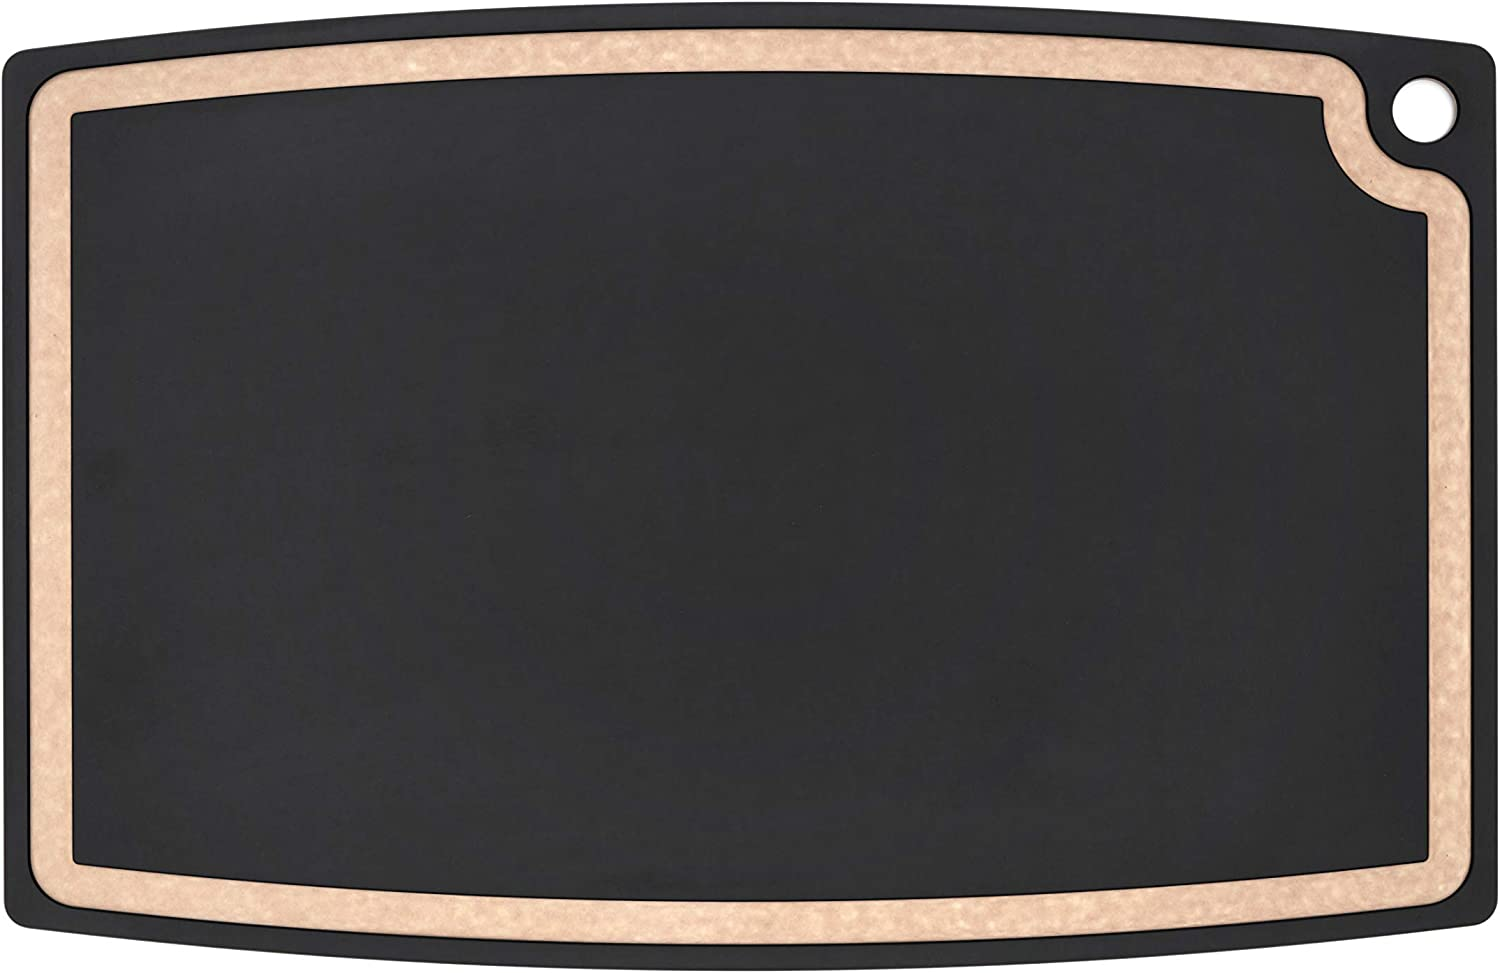 Epicurean Gourmet Series Cutting Board with Juice Groove, 27-Inch by 17.5-Inch, Slate/Natural